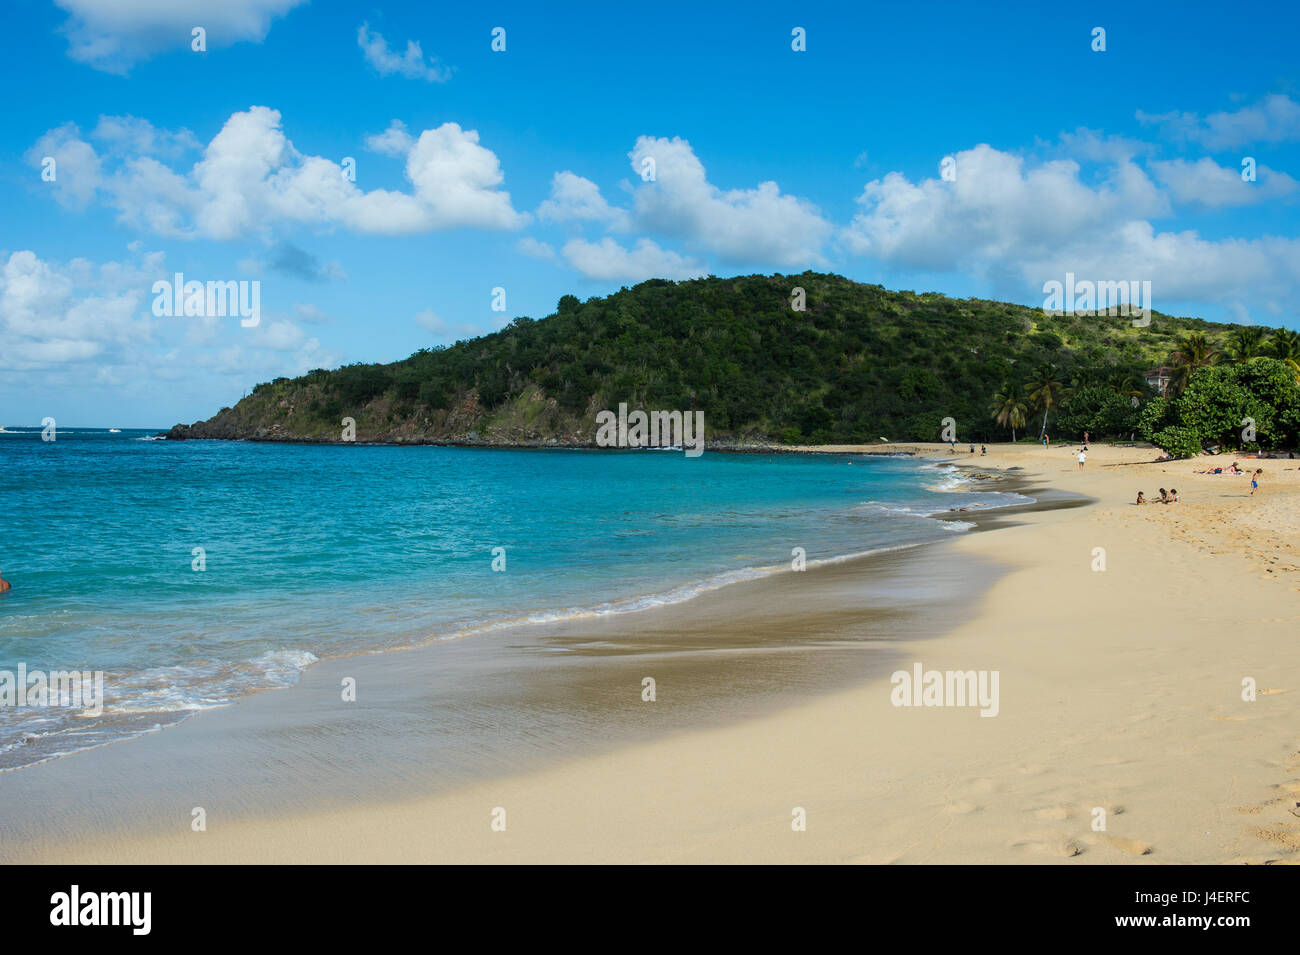 Happy Bay Beach, St. Martin, French territory, West Indies, Caribbean, Central America - Stock Image